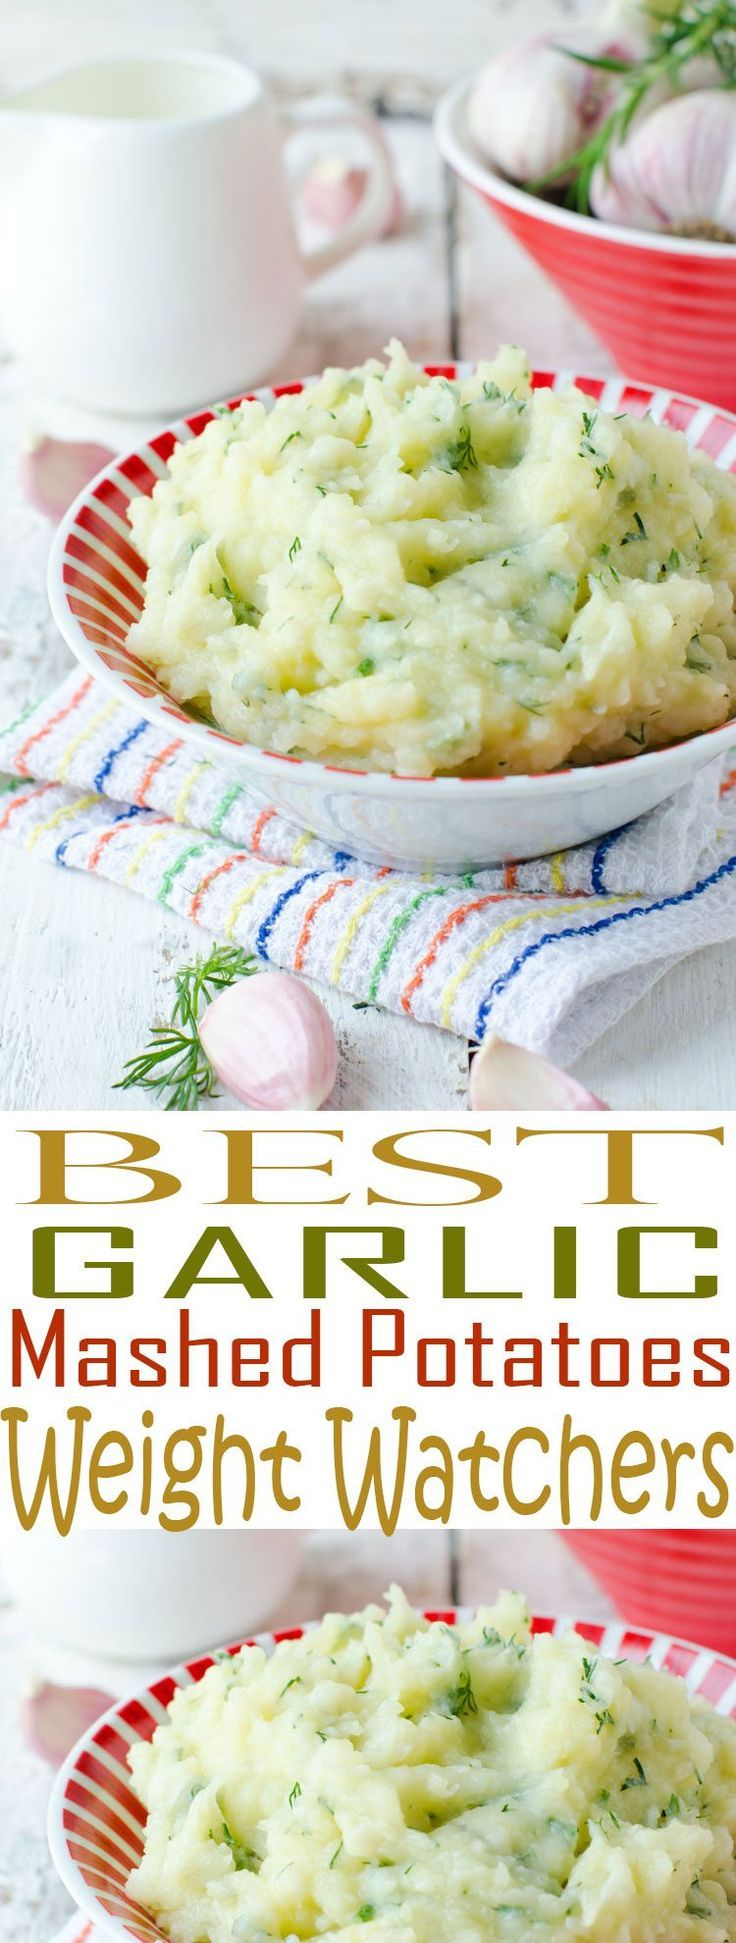 Weight Watchers Garlic Mashed Potatoes are an easy side dish recipe. You'll love these low fat mashed potatoes served alongside your main dish.